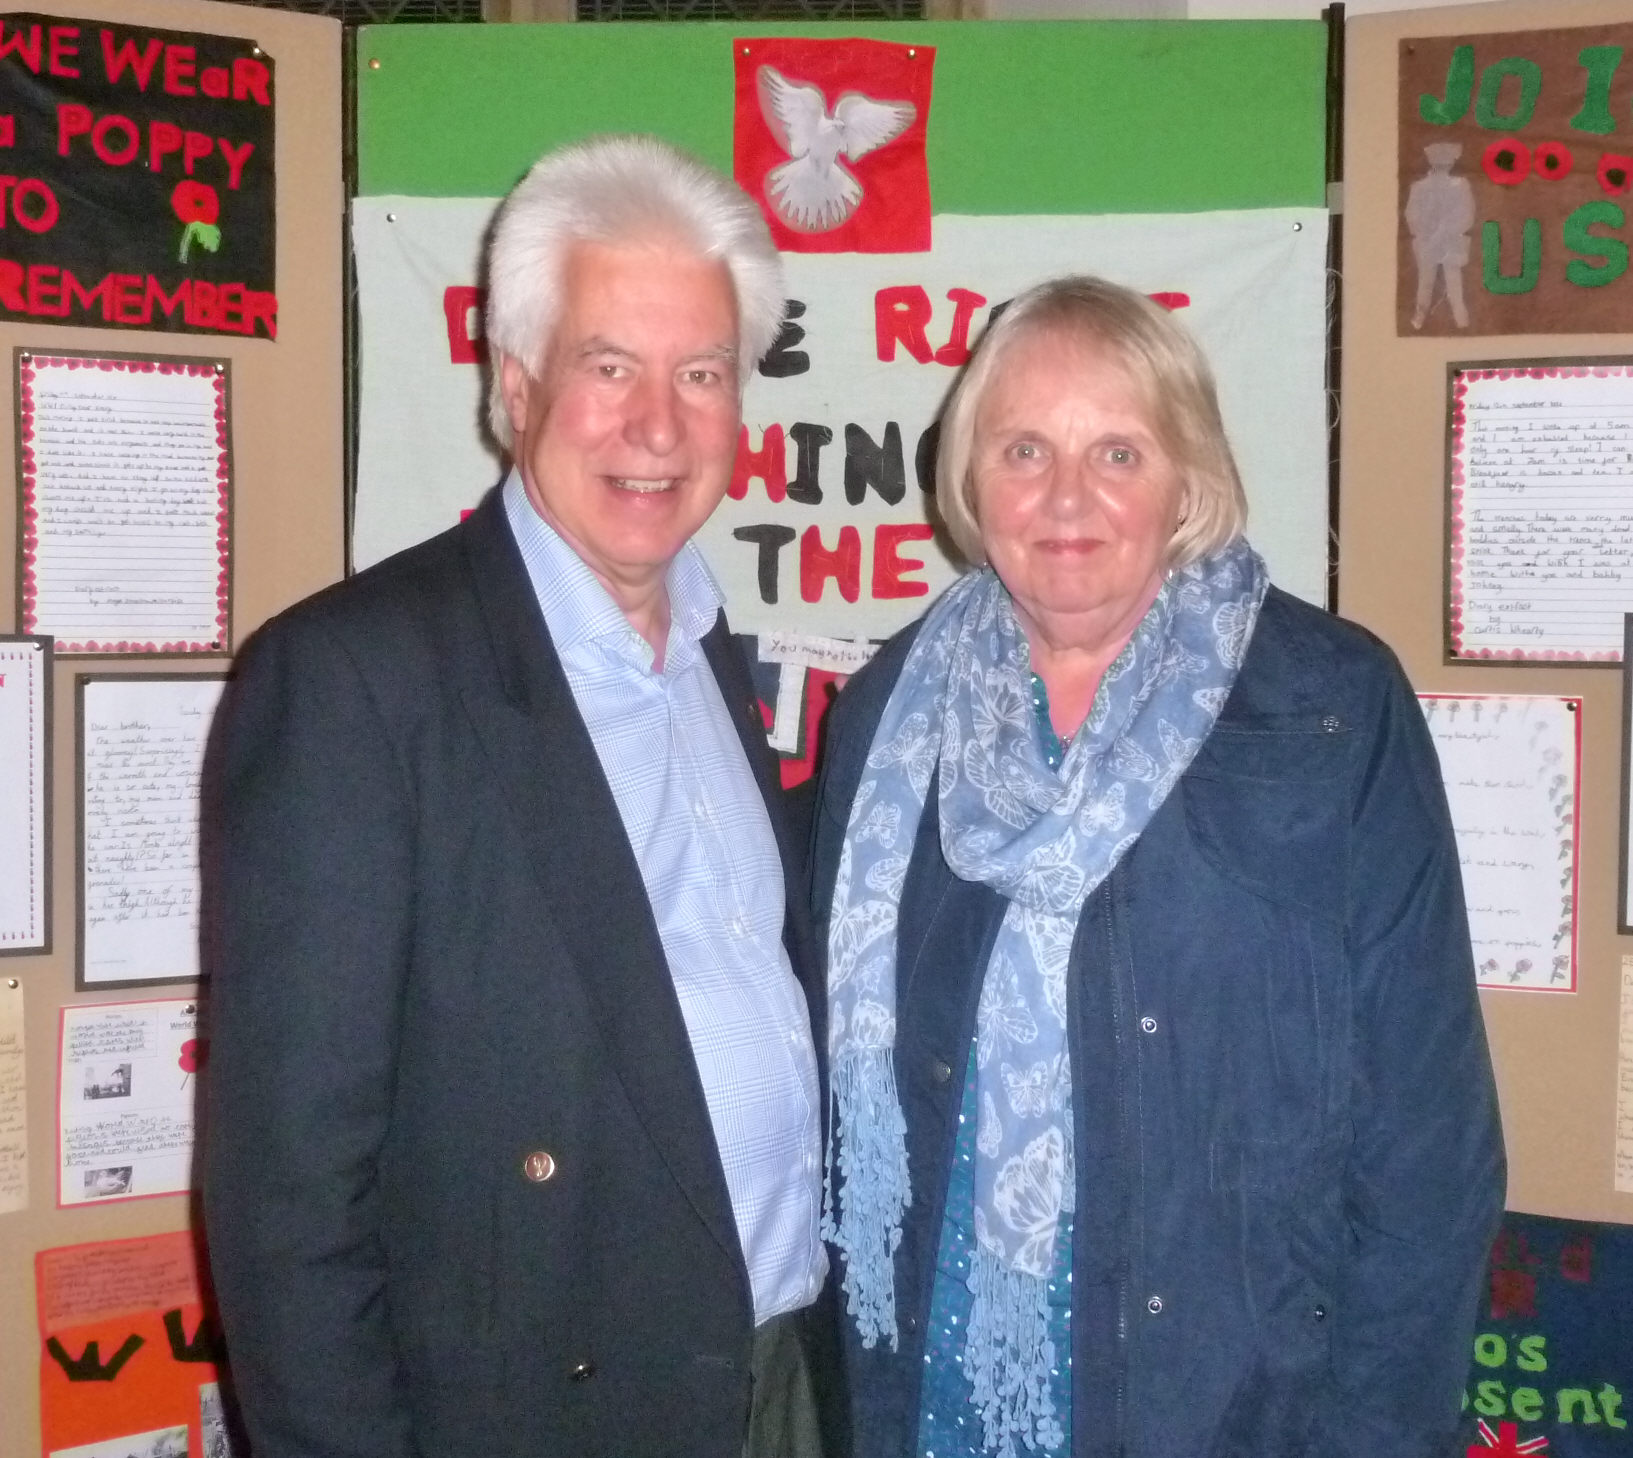 Peter Hill, Chairman of the Wivenhoe History Group with Gill Strudwick who has been leading the WW1 project, working with the Wivenhoe Schools and led on the HLF grant